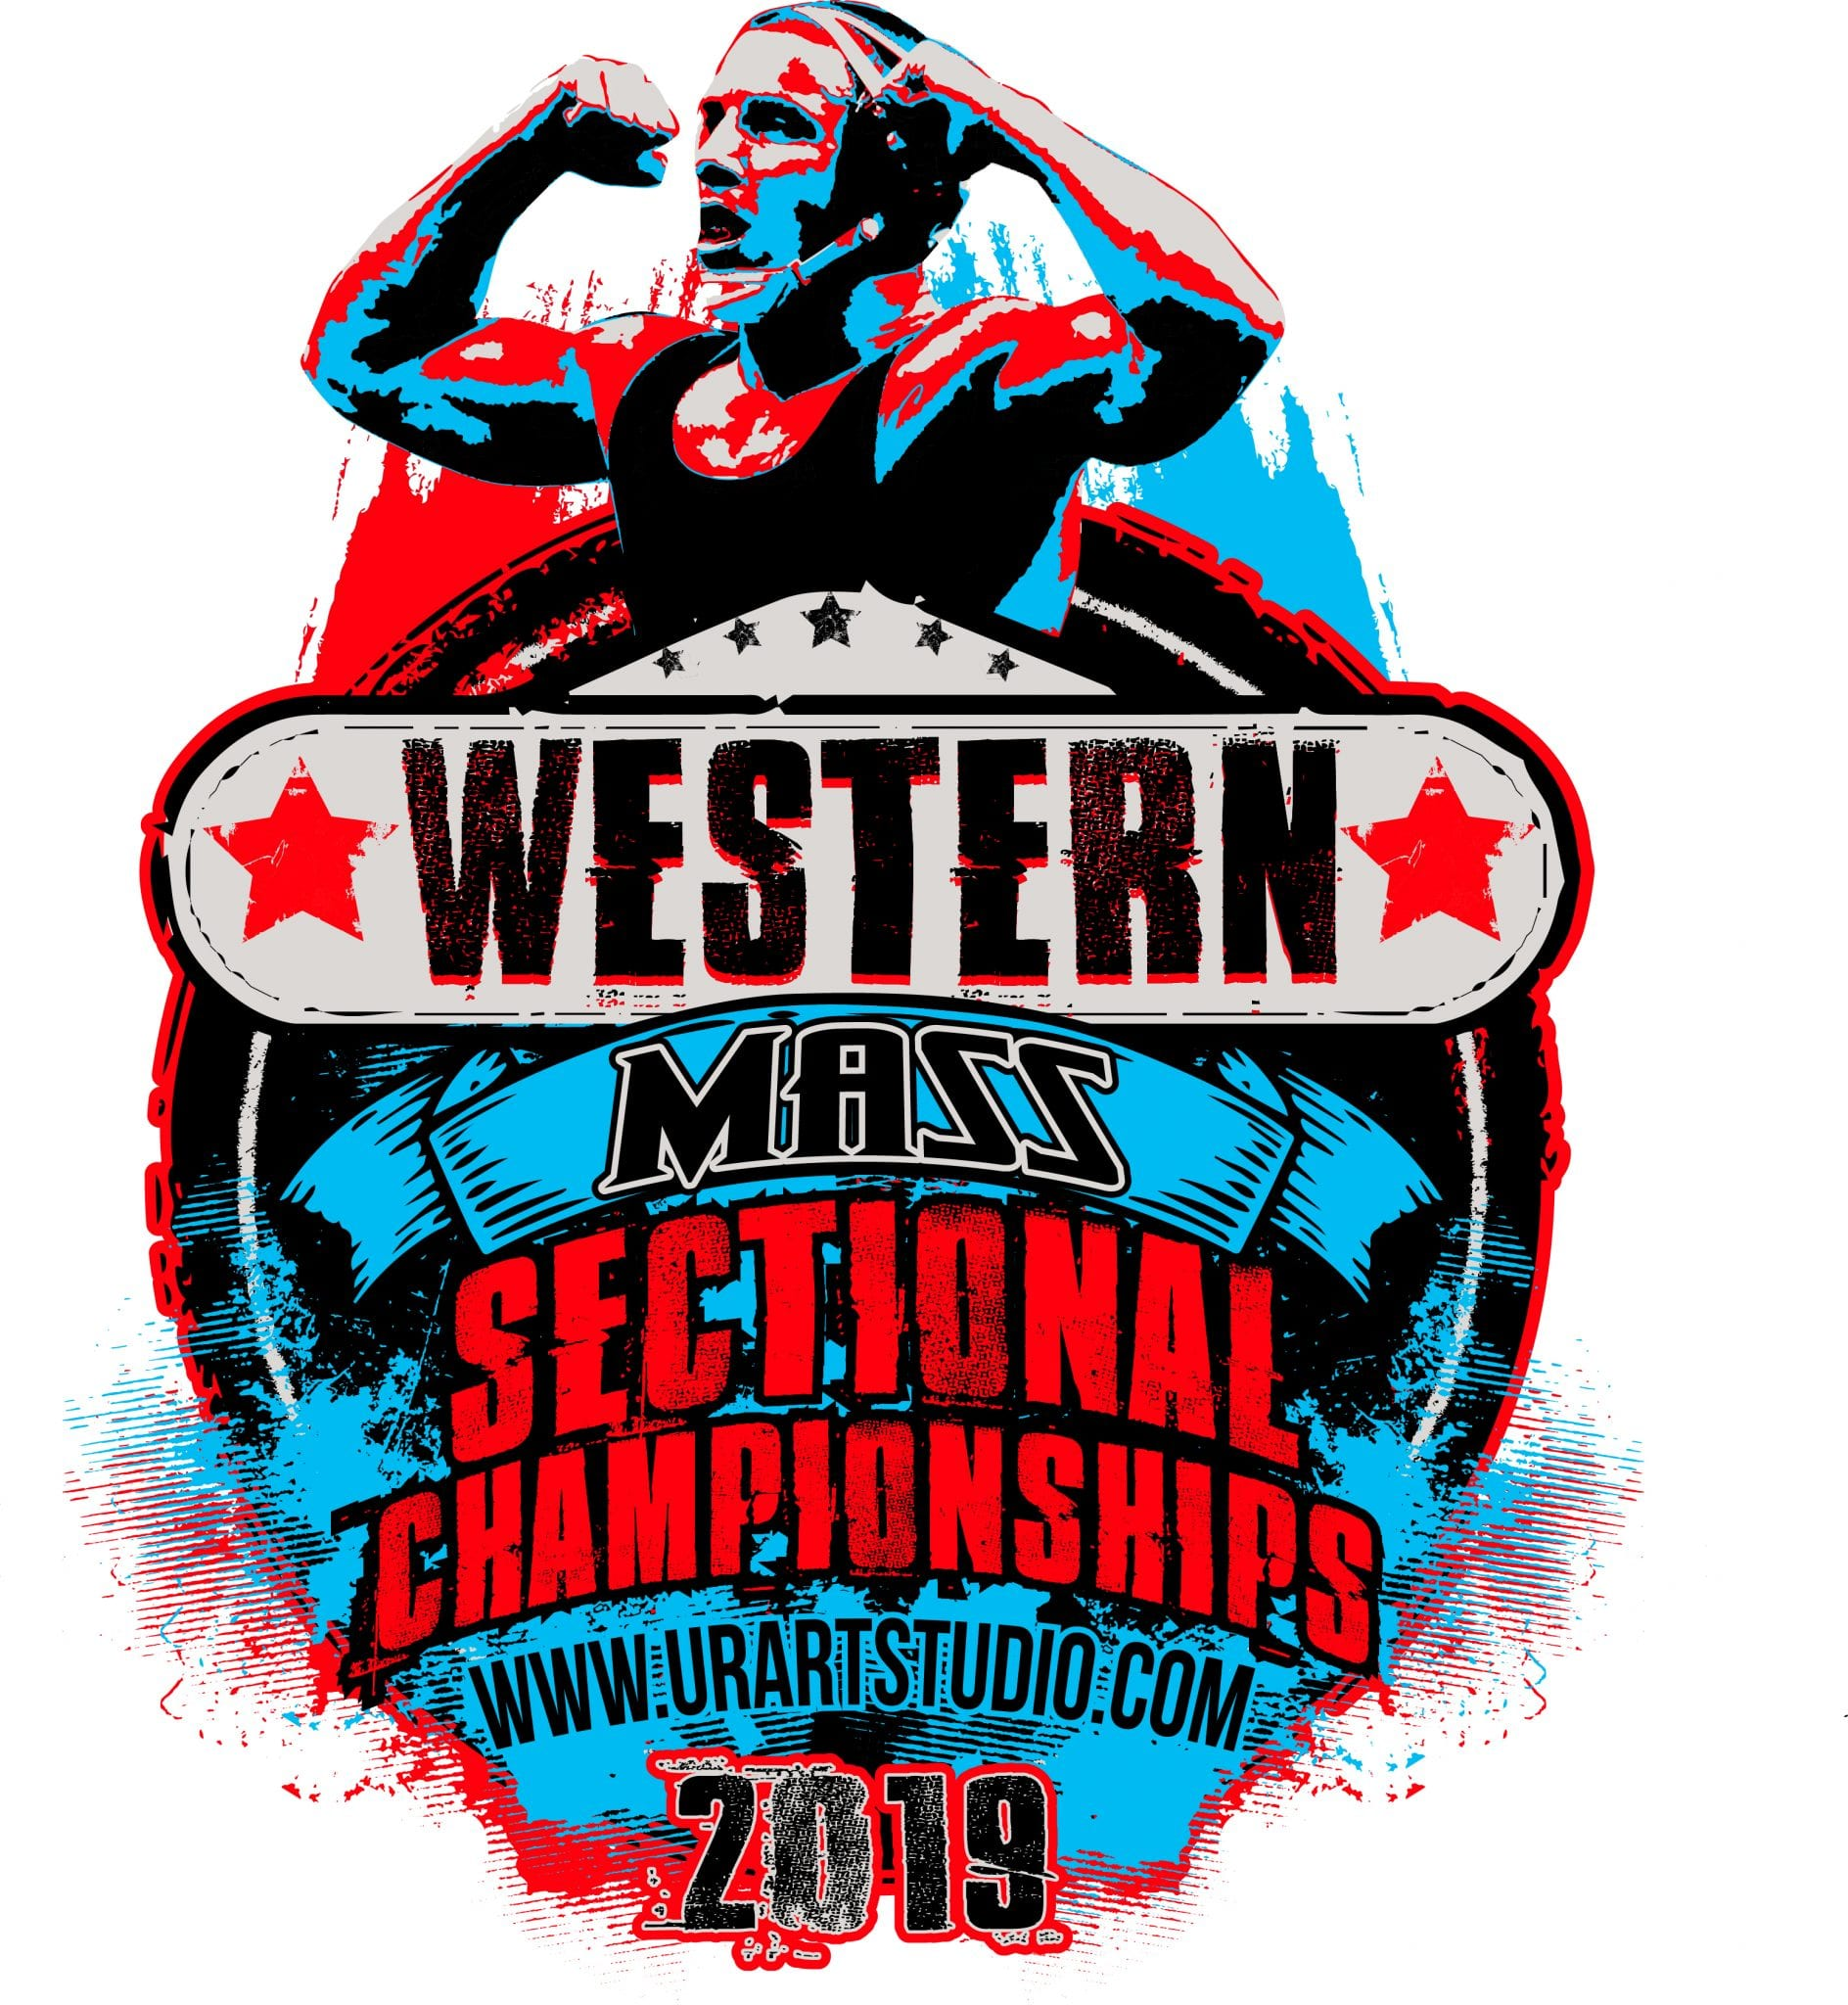 WRESTLING WESTERN MASS SECTIONAL CHAMPIONSHIPS 2019 T-shirt vector logo design for print